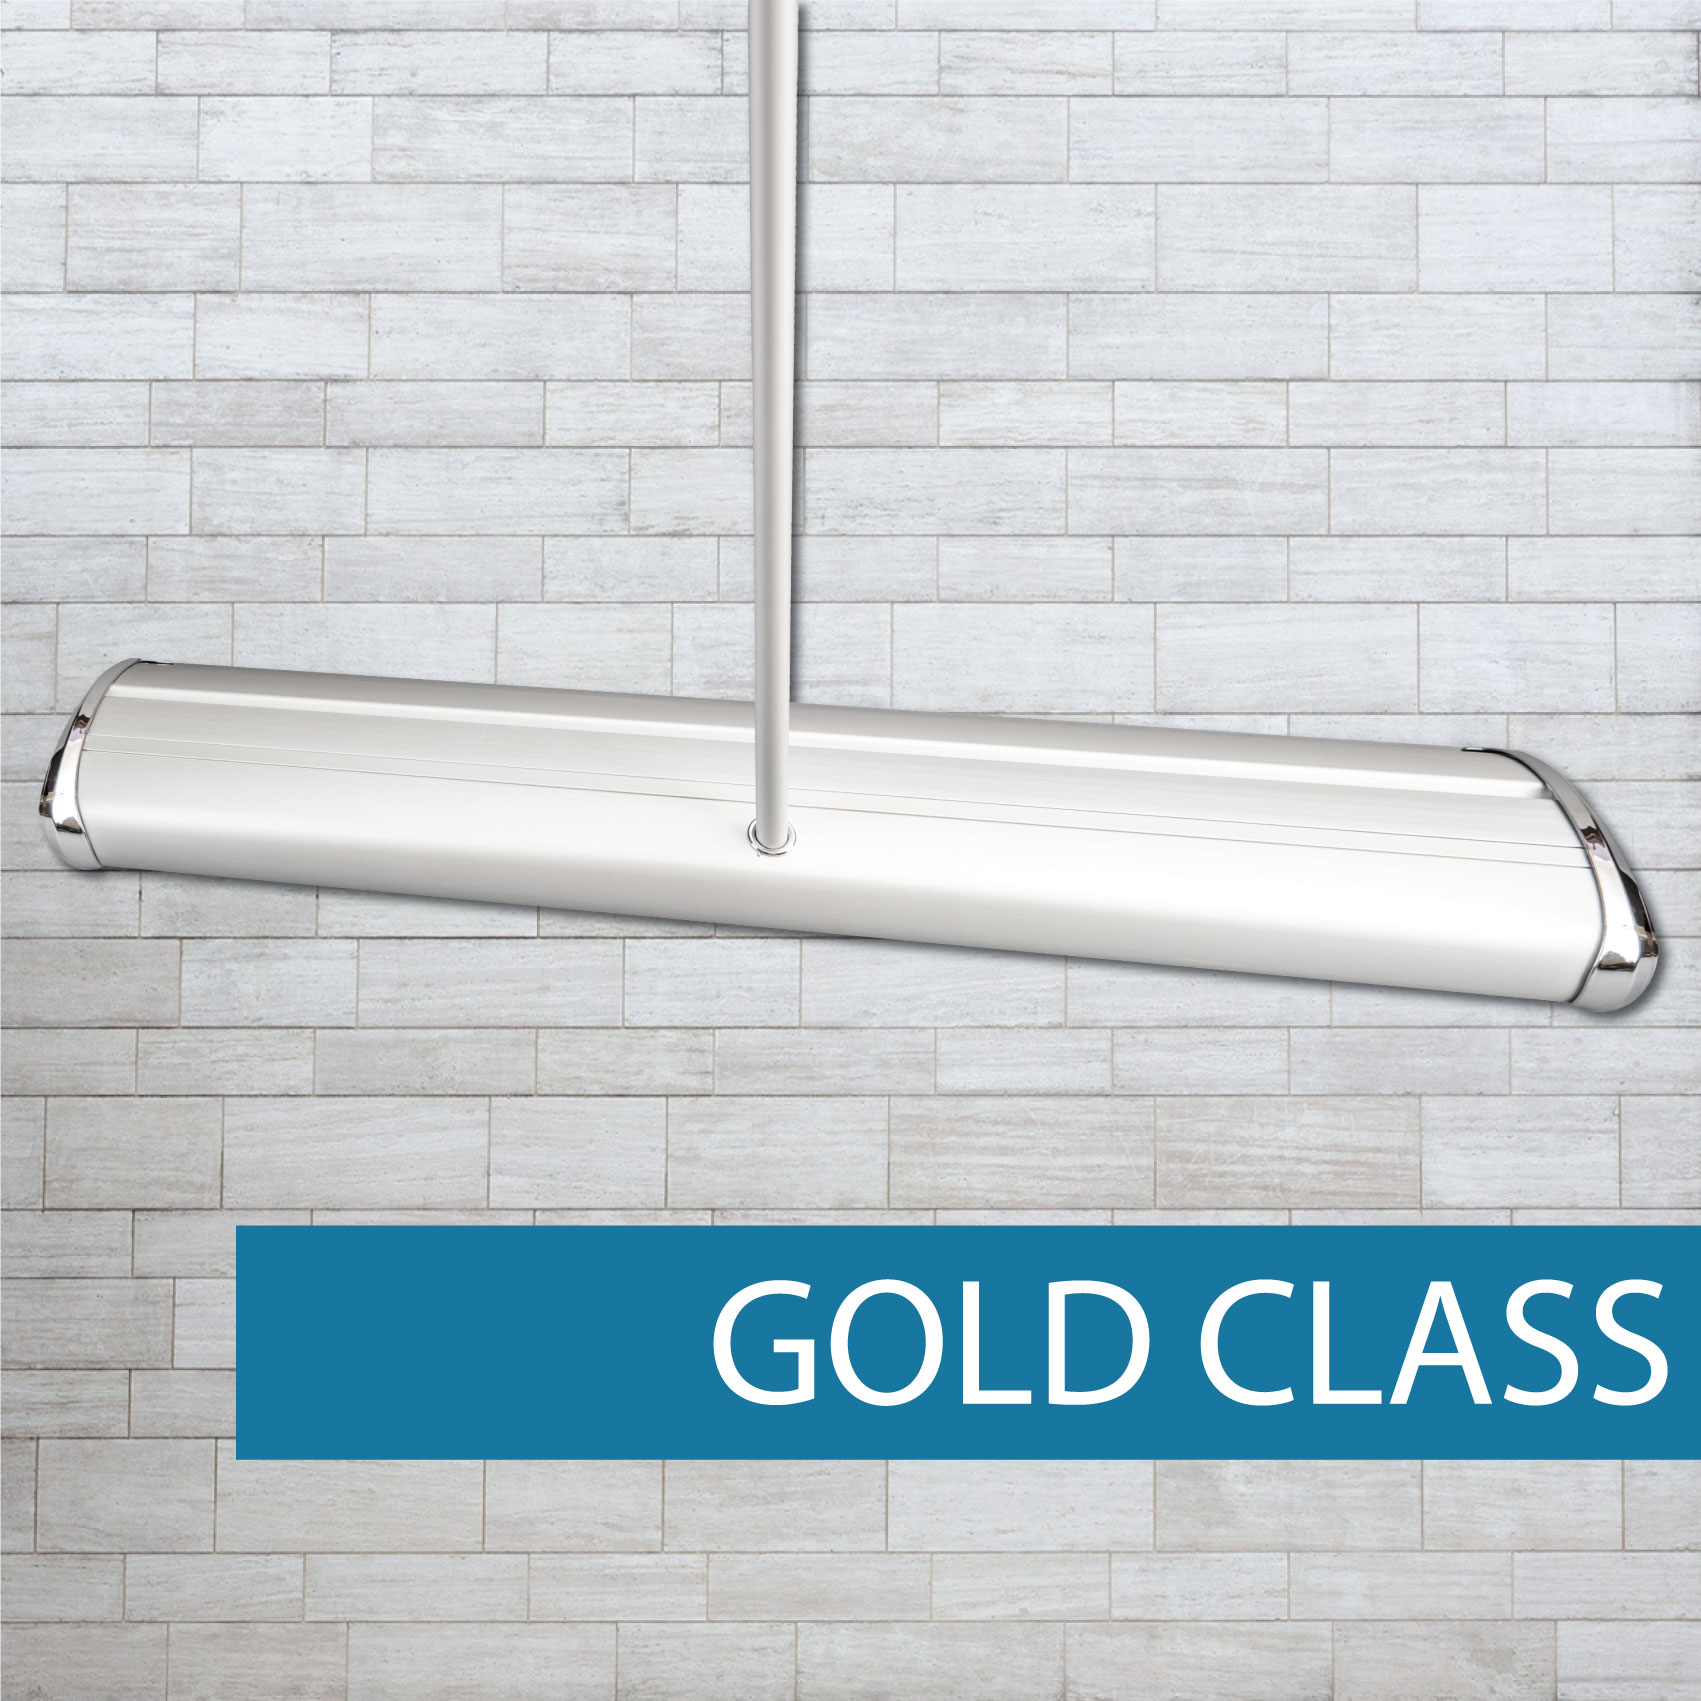 Gold Class pull-up banner Base